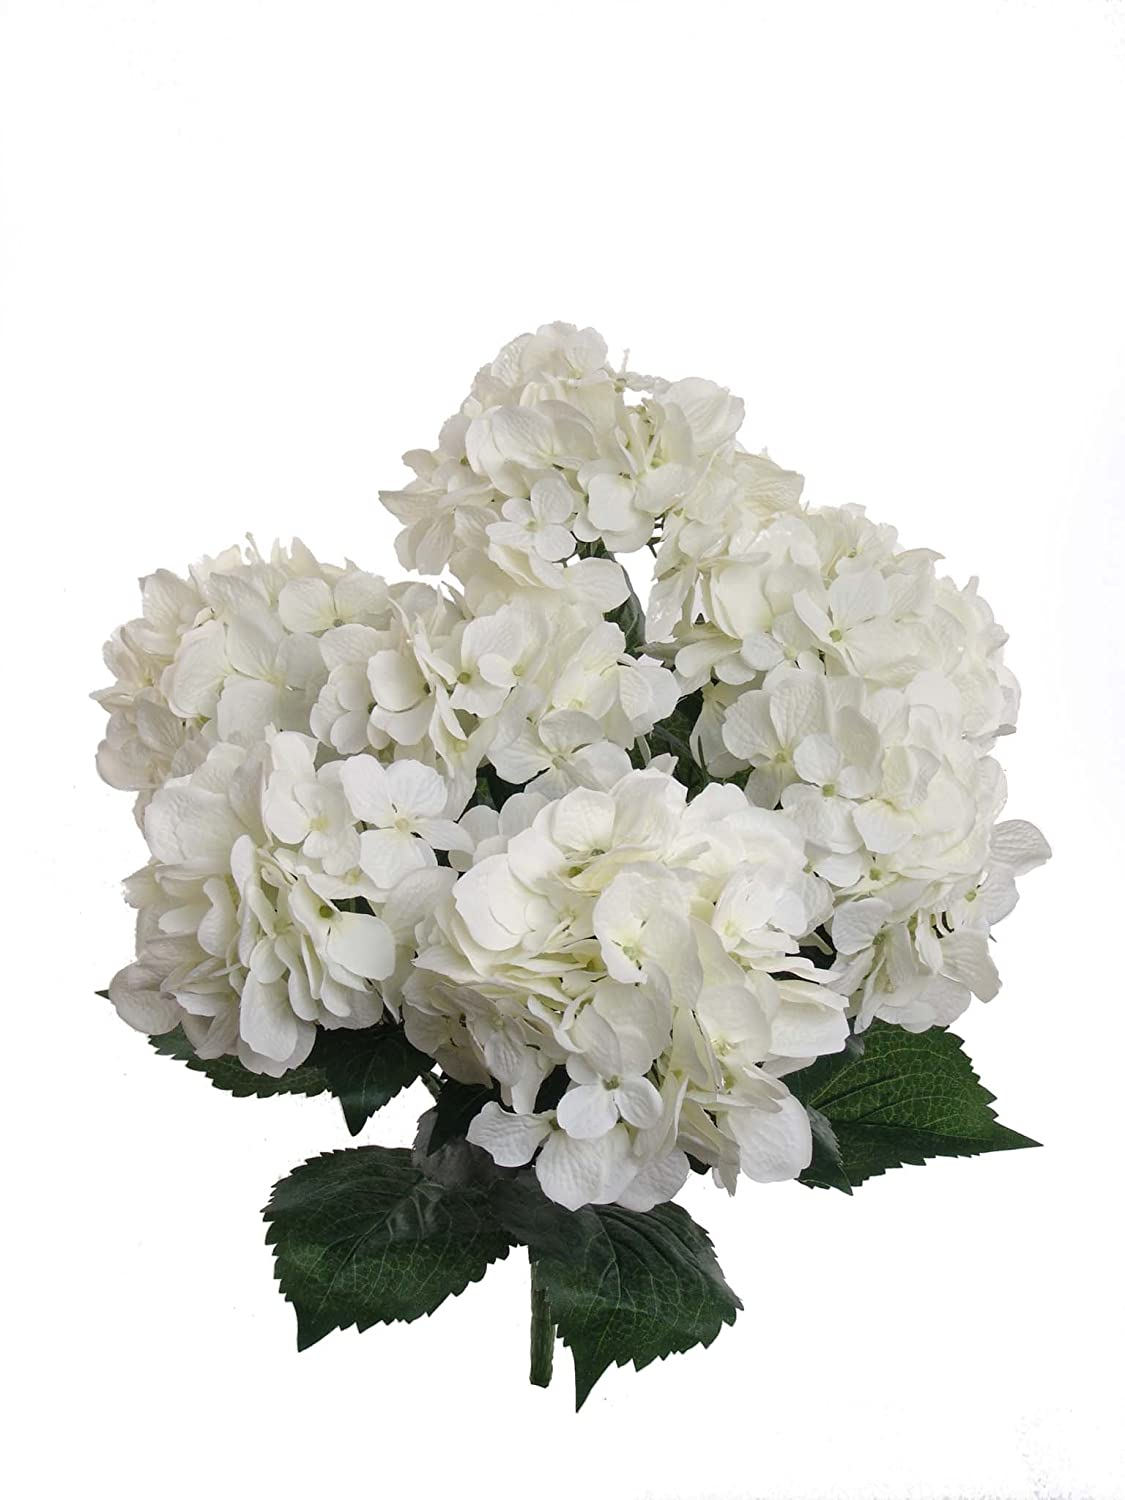 Amazon 1 artificial silk 22 white hydrangea bush w 7 mop amazon 1 artificial silk 22 white hydrangea bush w 7 mop heads multiple colors available home kitchen izmirmasajfo